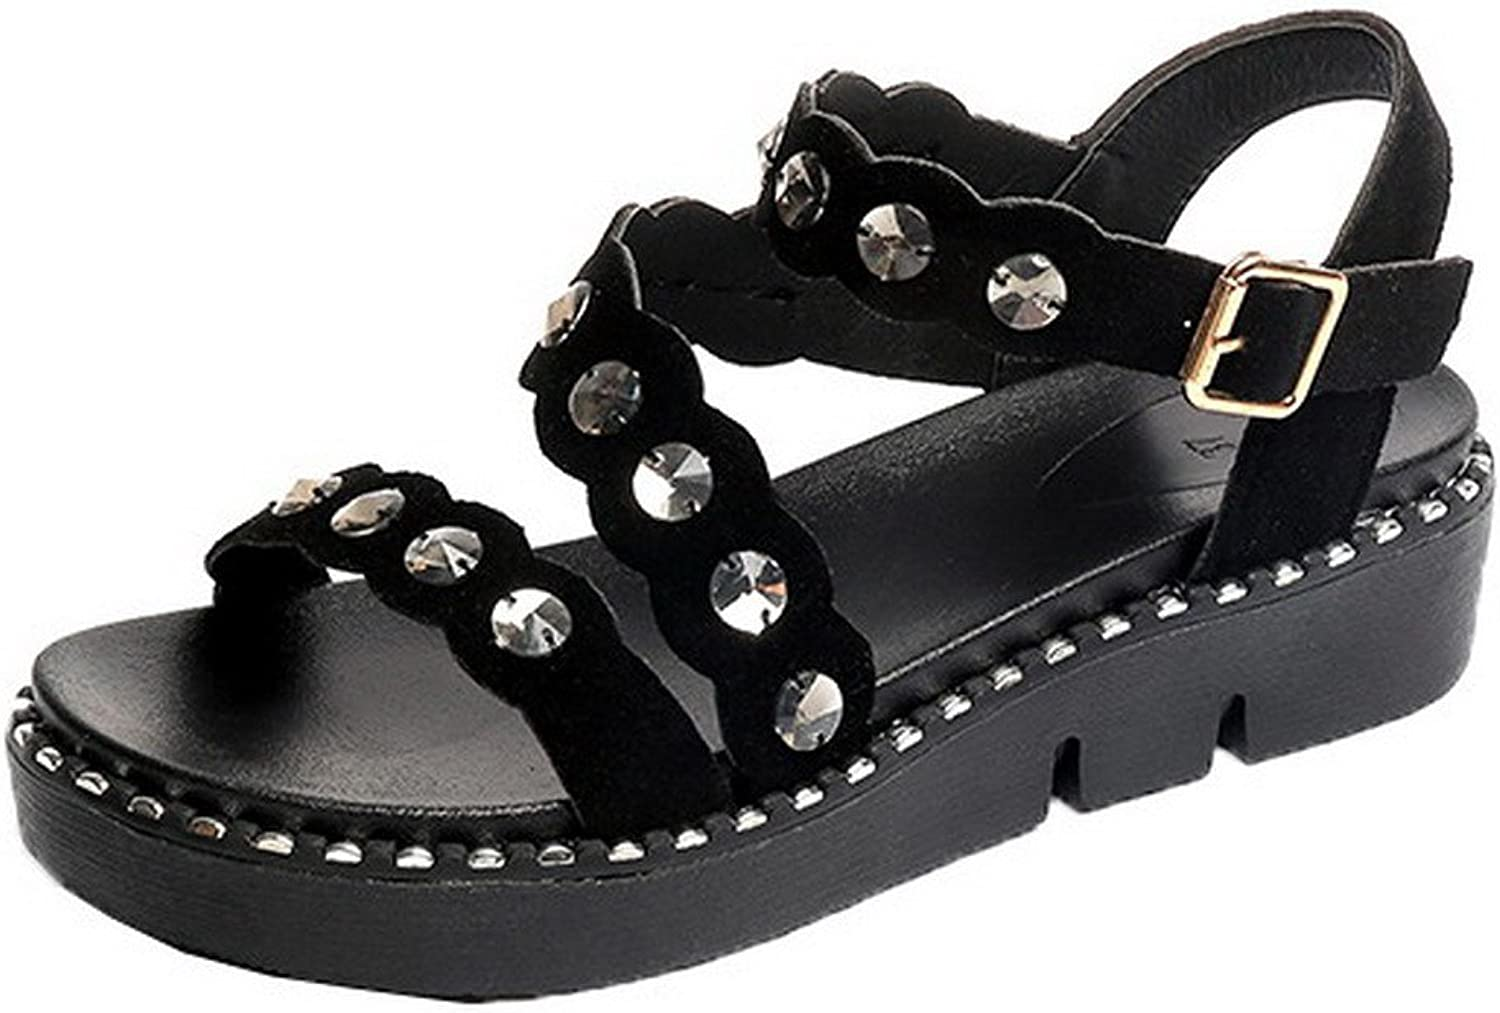 AllhqFashion Women's Solid Imitated Suede Open-Toe Buckle Sandals, FBULC012544